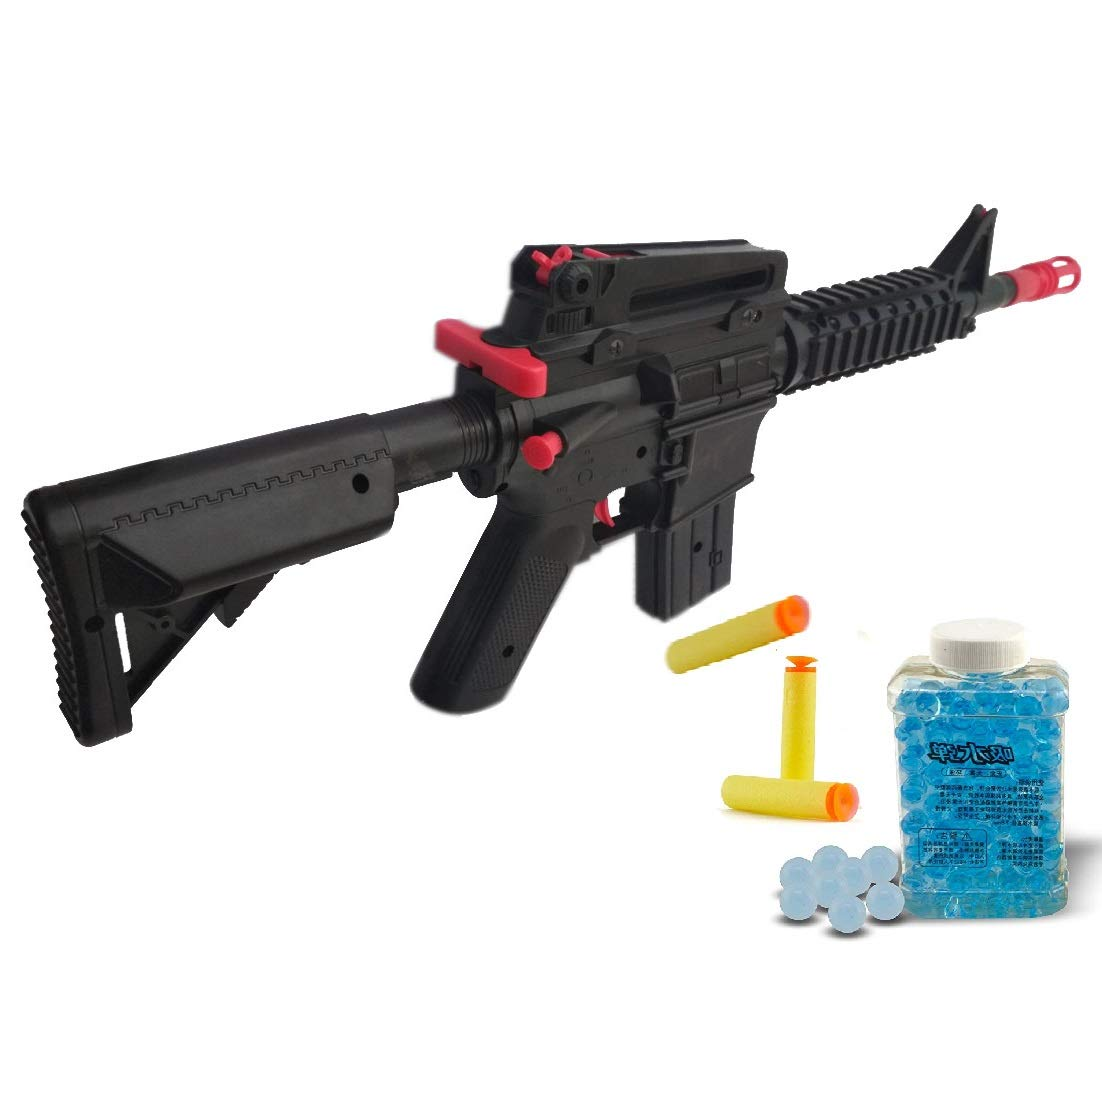 Buy Indusbay 2 In 1 Soft Bullets And Water Bullets Toy Gun Sniper Gun Toy For Kids Online At Low Prices In India Amazon In